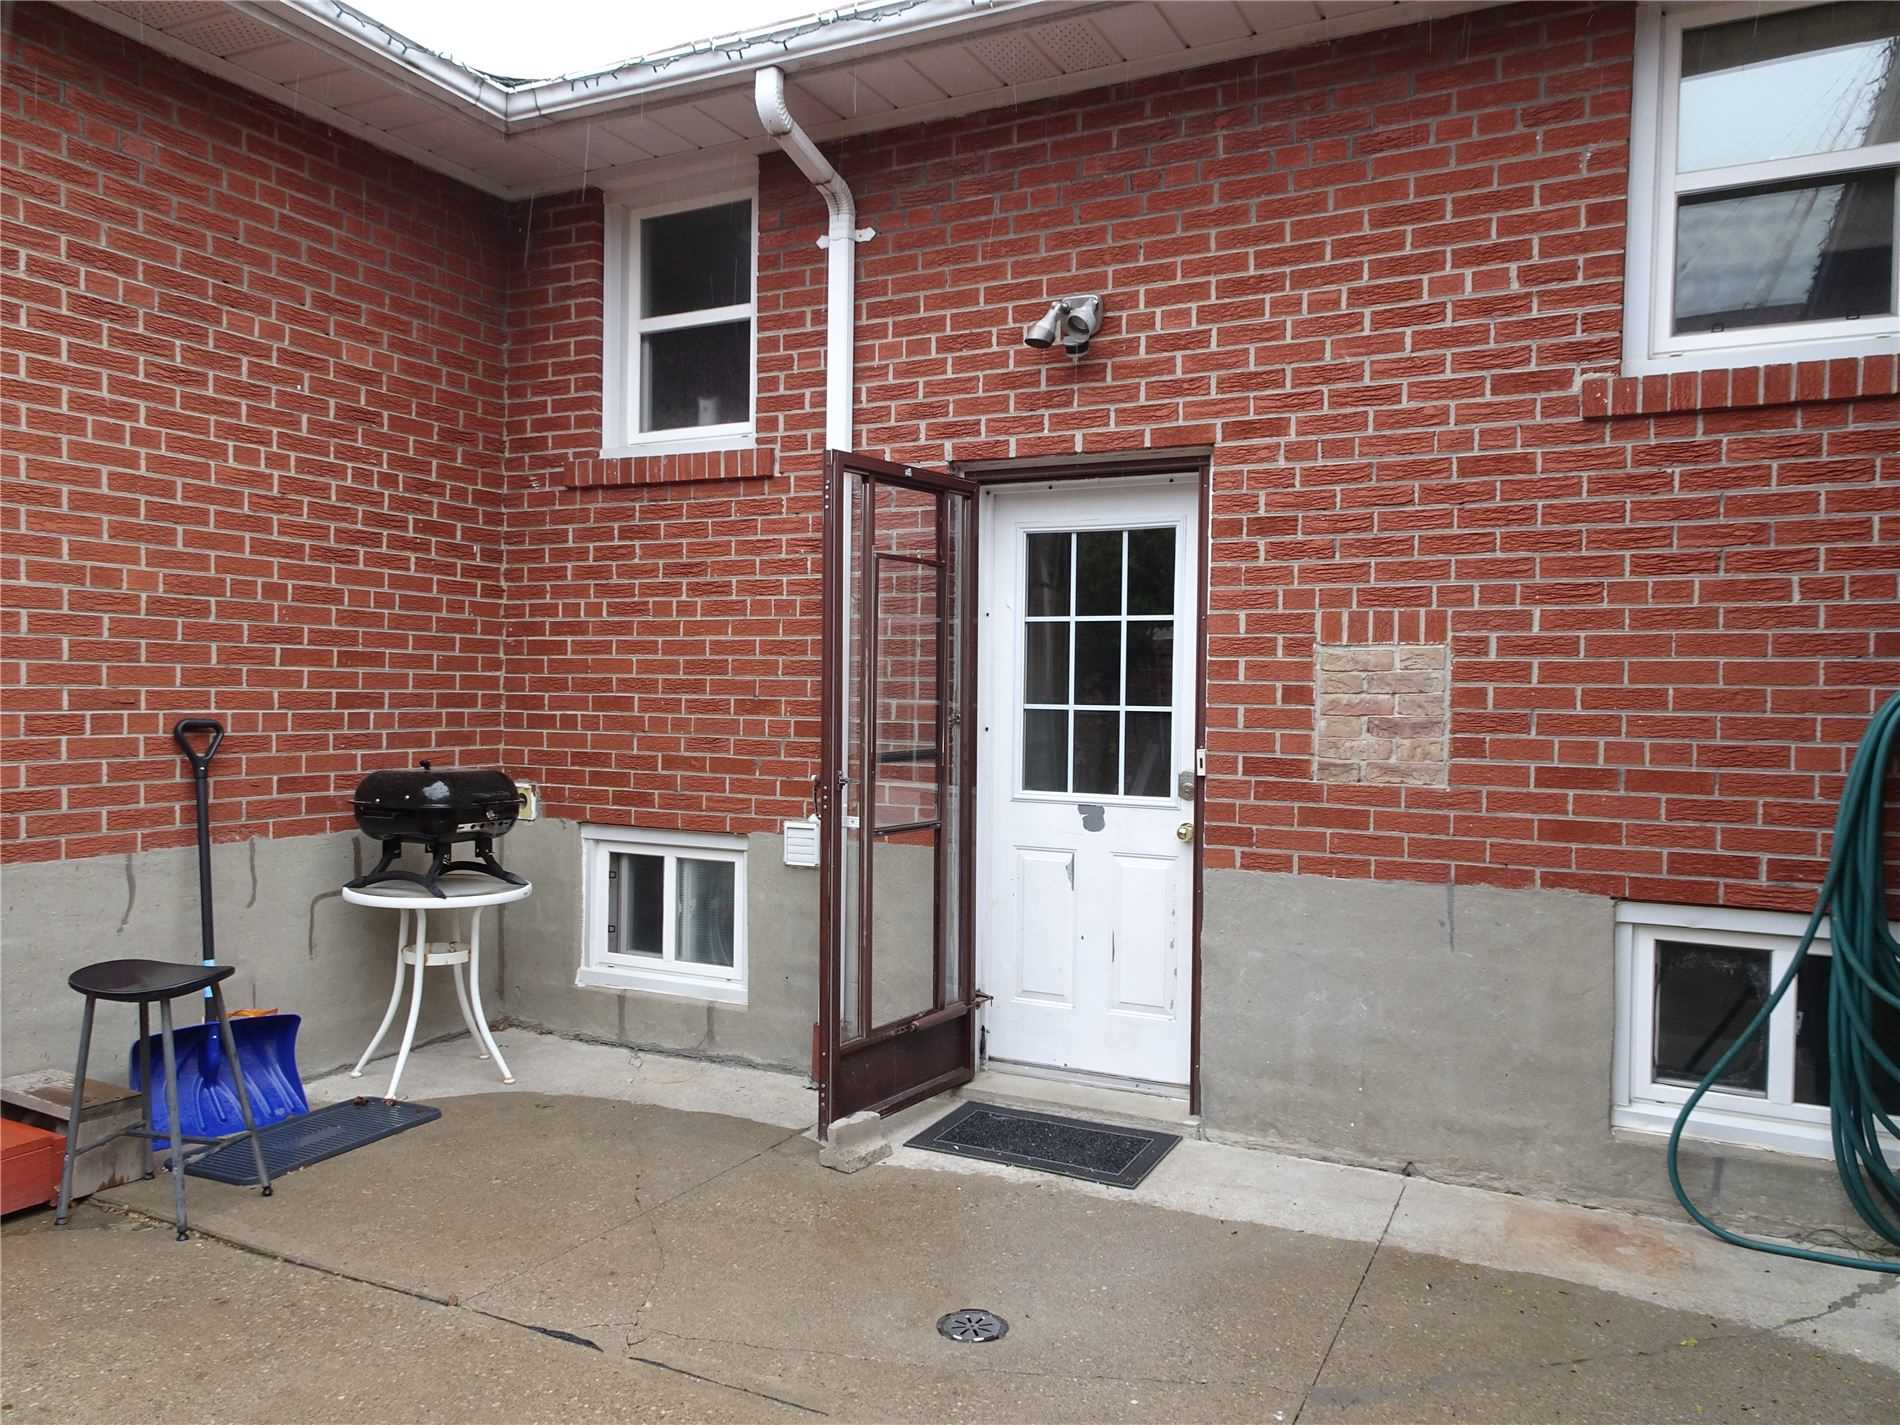 Image 3 of 9 showing inside of 3 Bedroom Detached Bungalow for Lease at 6 Mullet Rd, Toronto M2M2A6